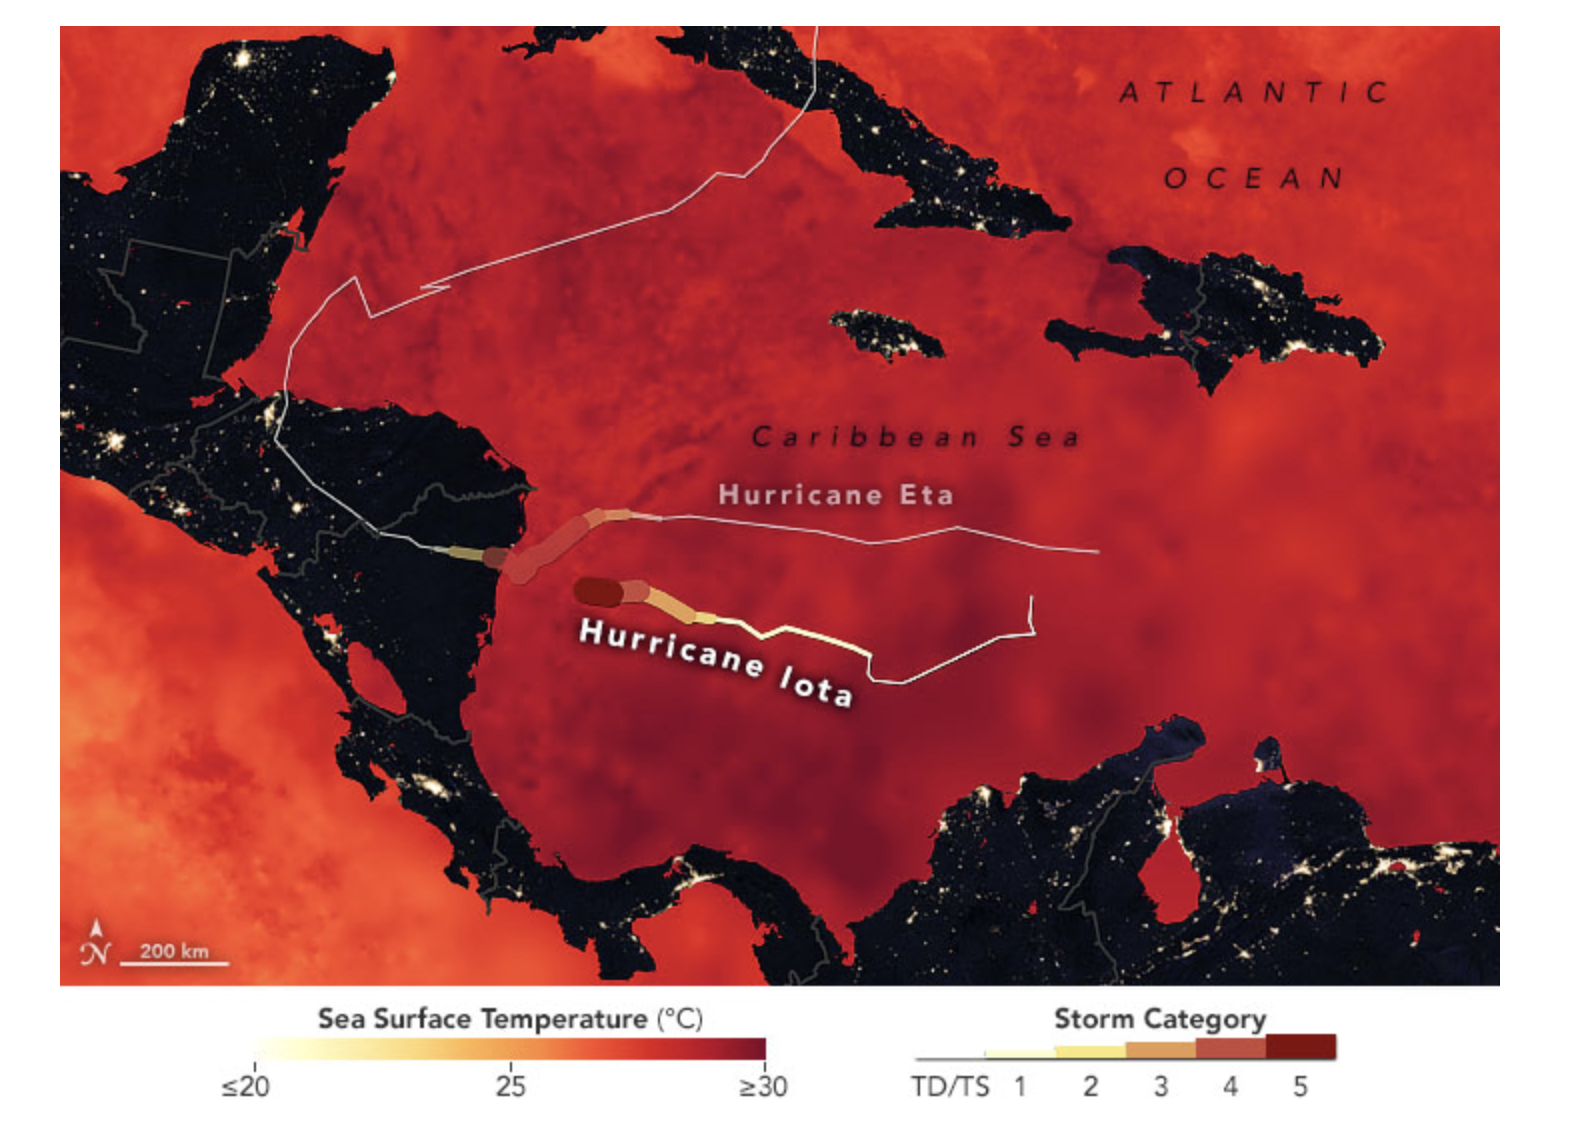 A map showing the tracks of Hurricane Iota and Hurricane Eta overlaid on a map of sea surface temperatures in the Caribbean Sea and the Gulf of Mexico as measured on Nov. 15, 2020.